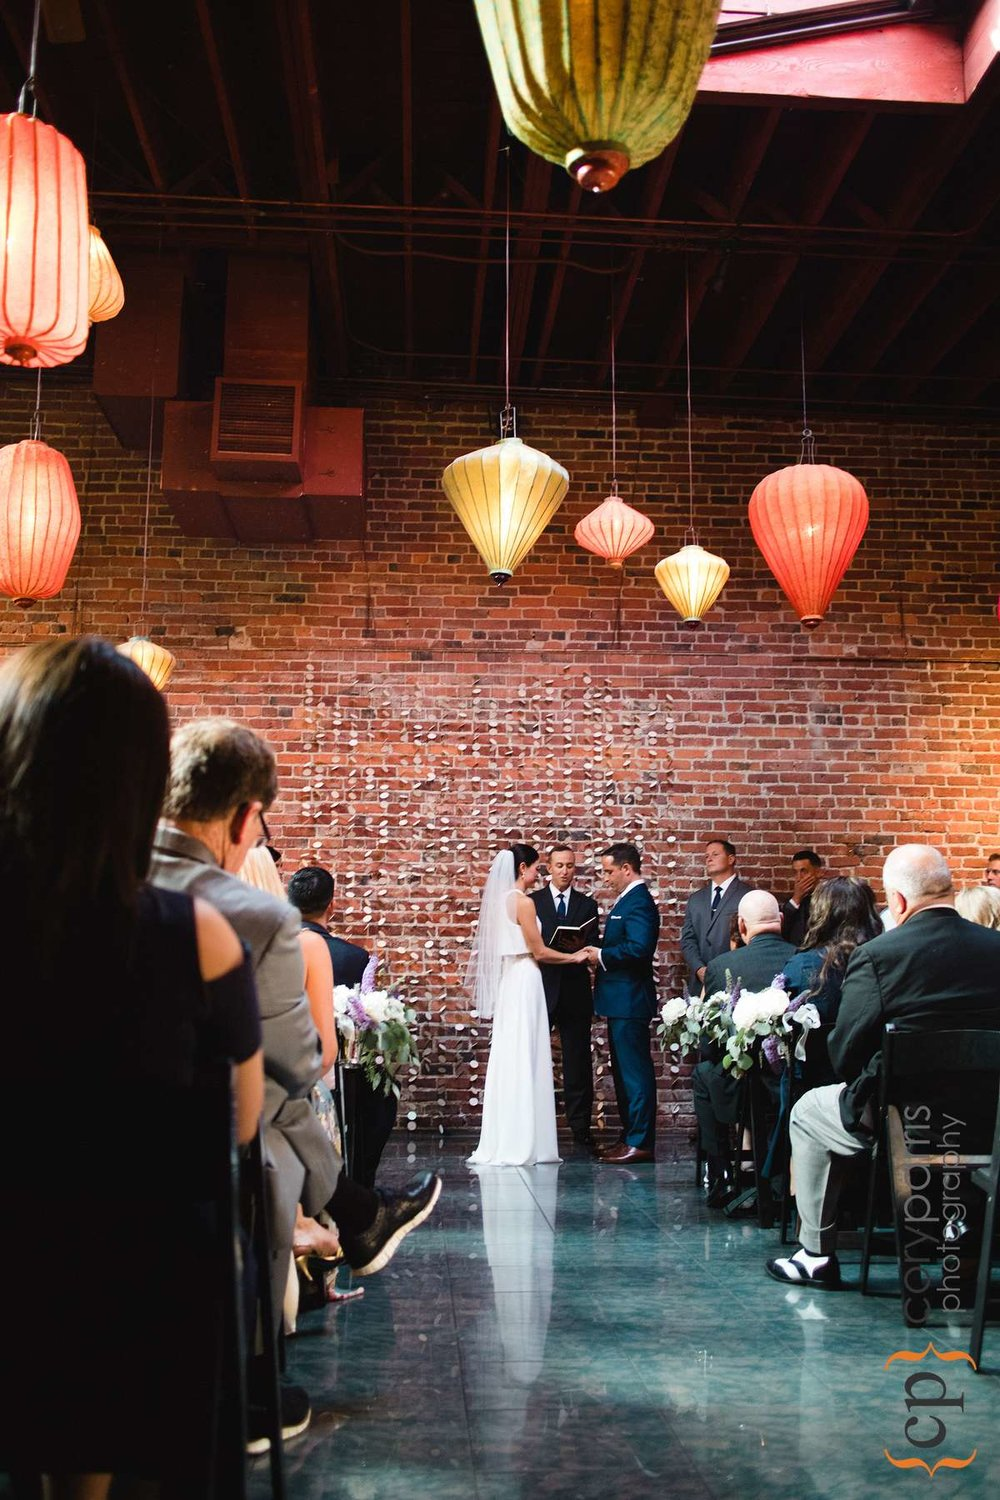 Wedding ceremony at the Georgetown Ballroom. Photo by Alyssa Parris.